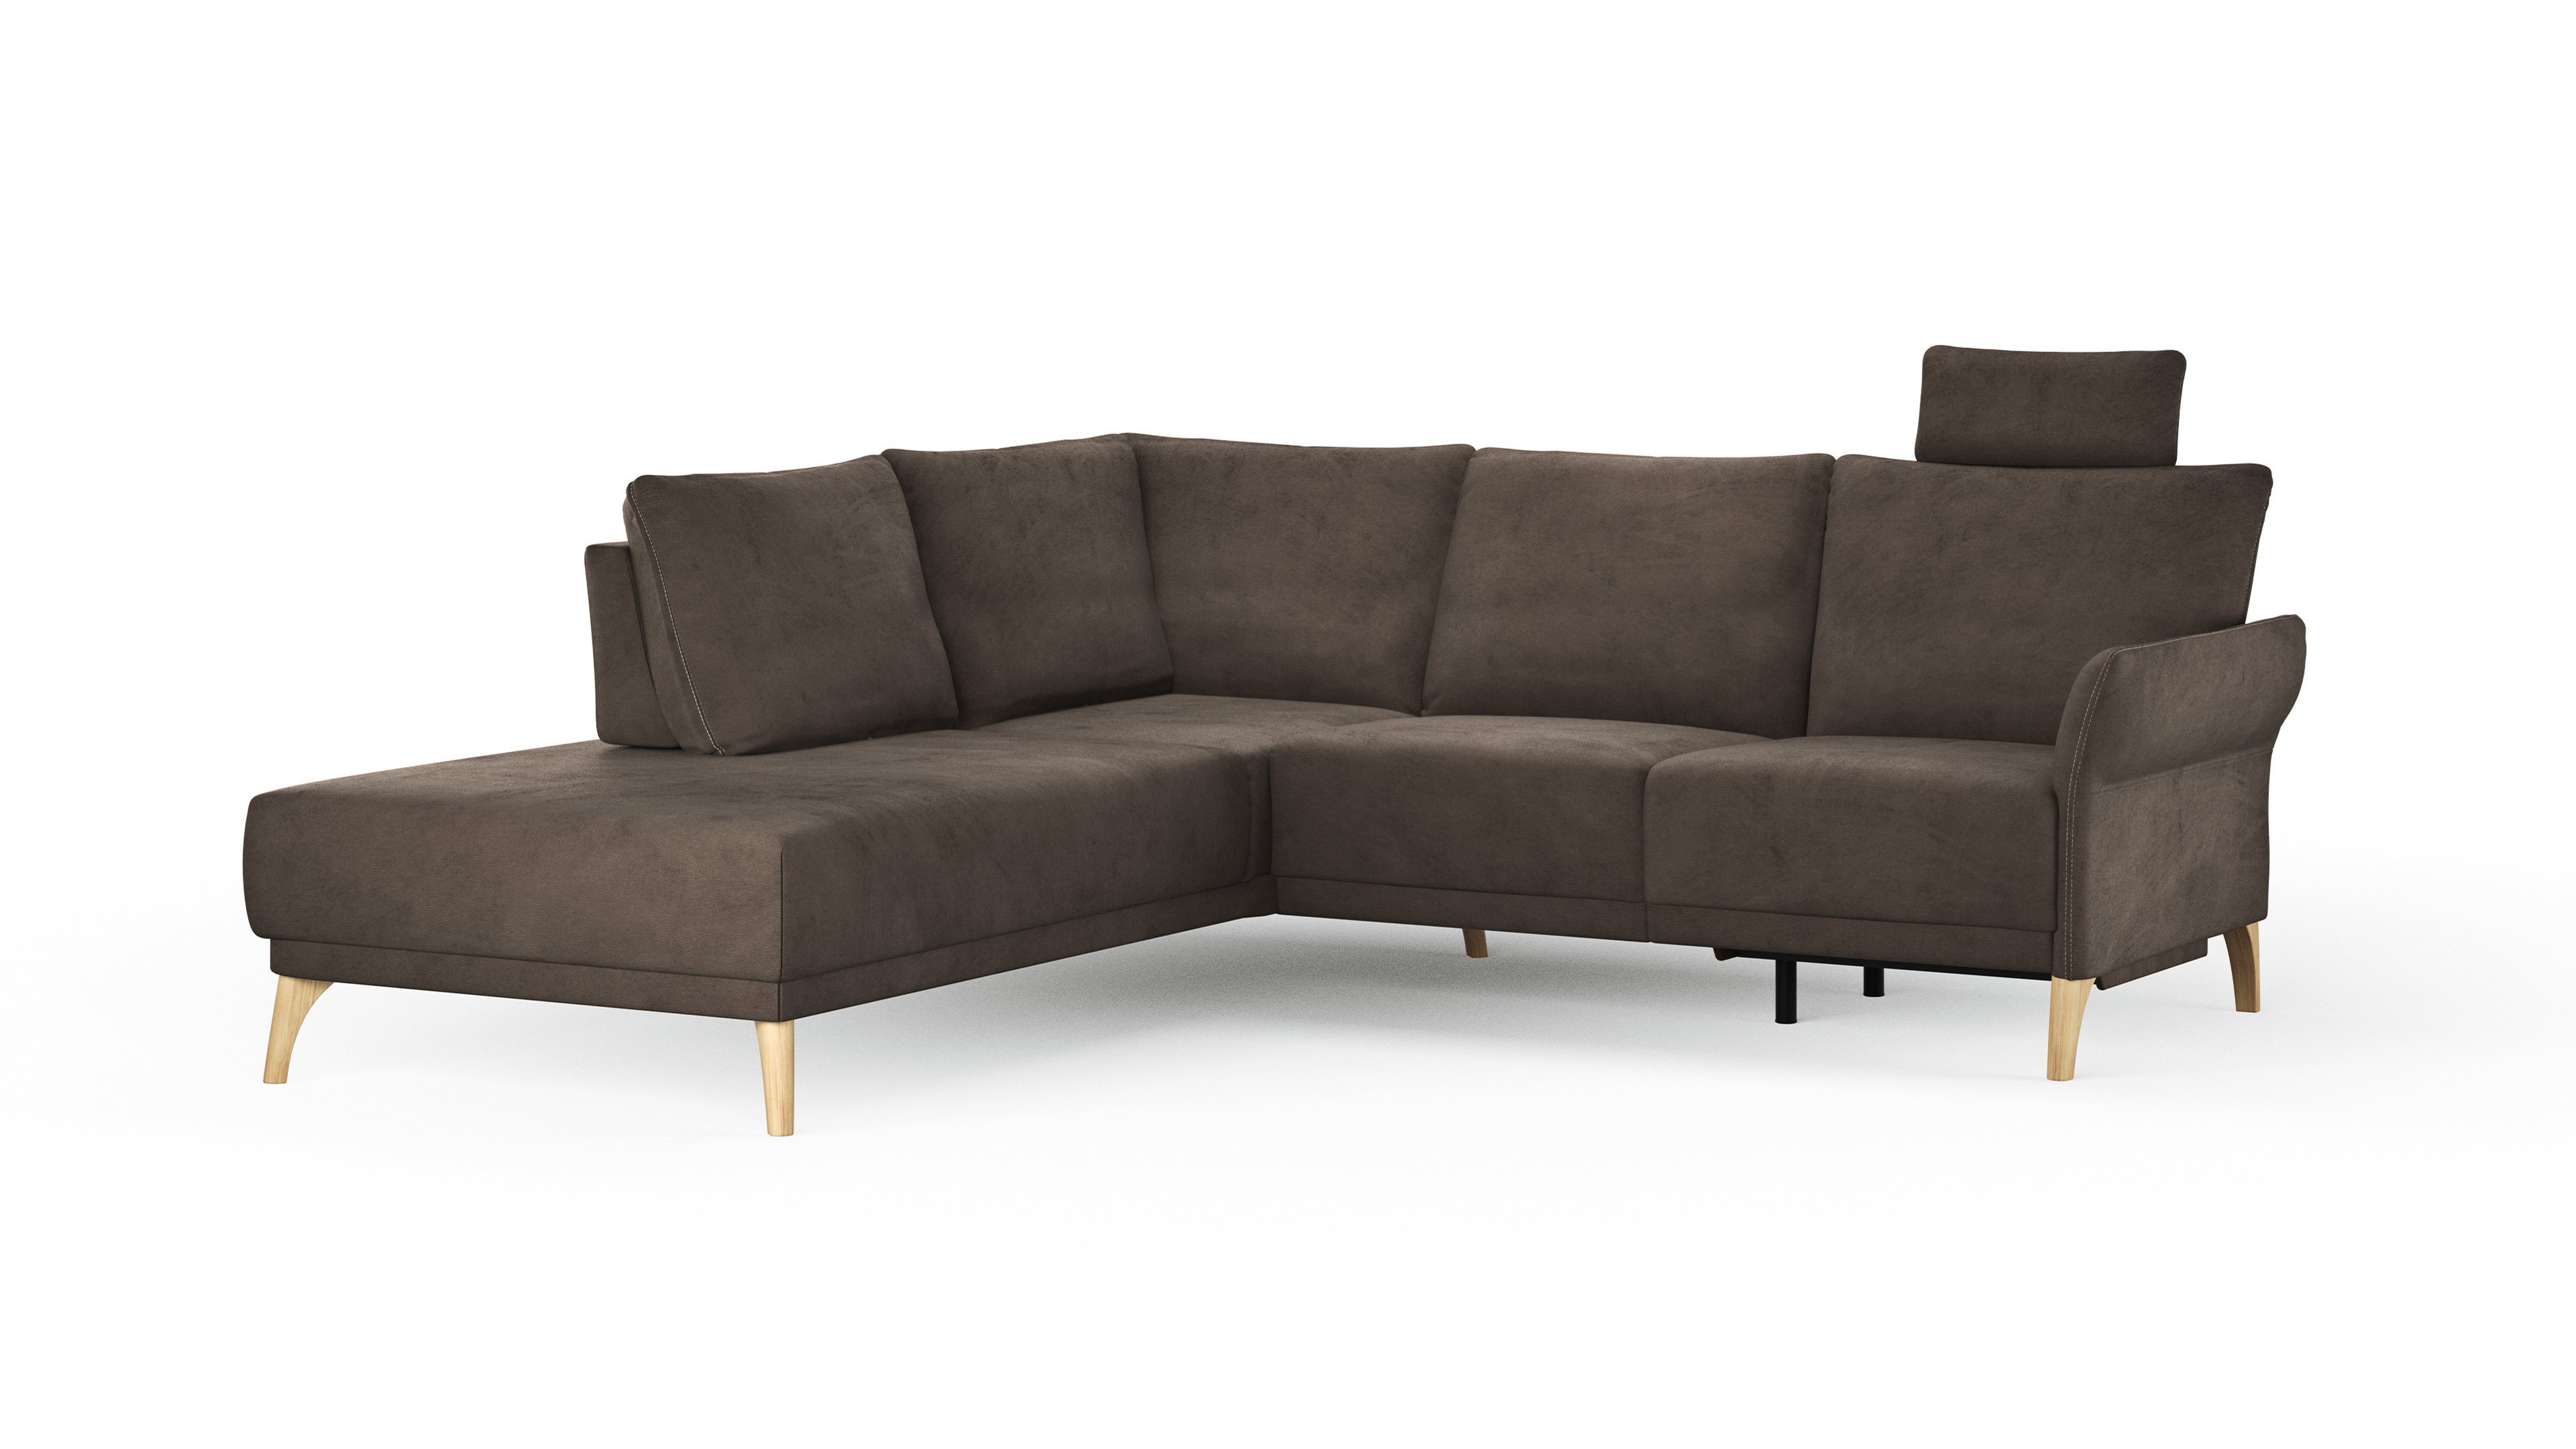 Global Comfort Ecksofa Rosario freisteller 1 102541 | Homepoet